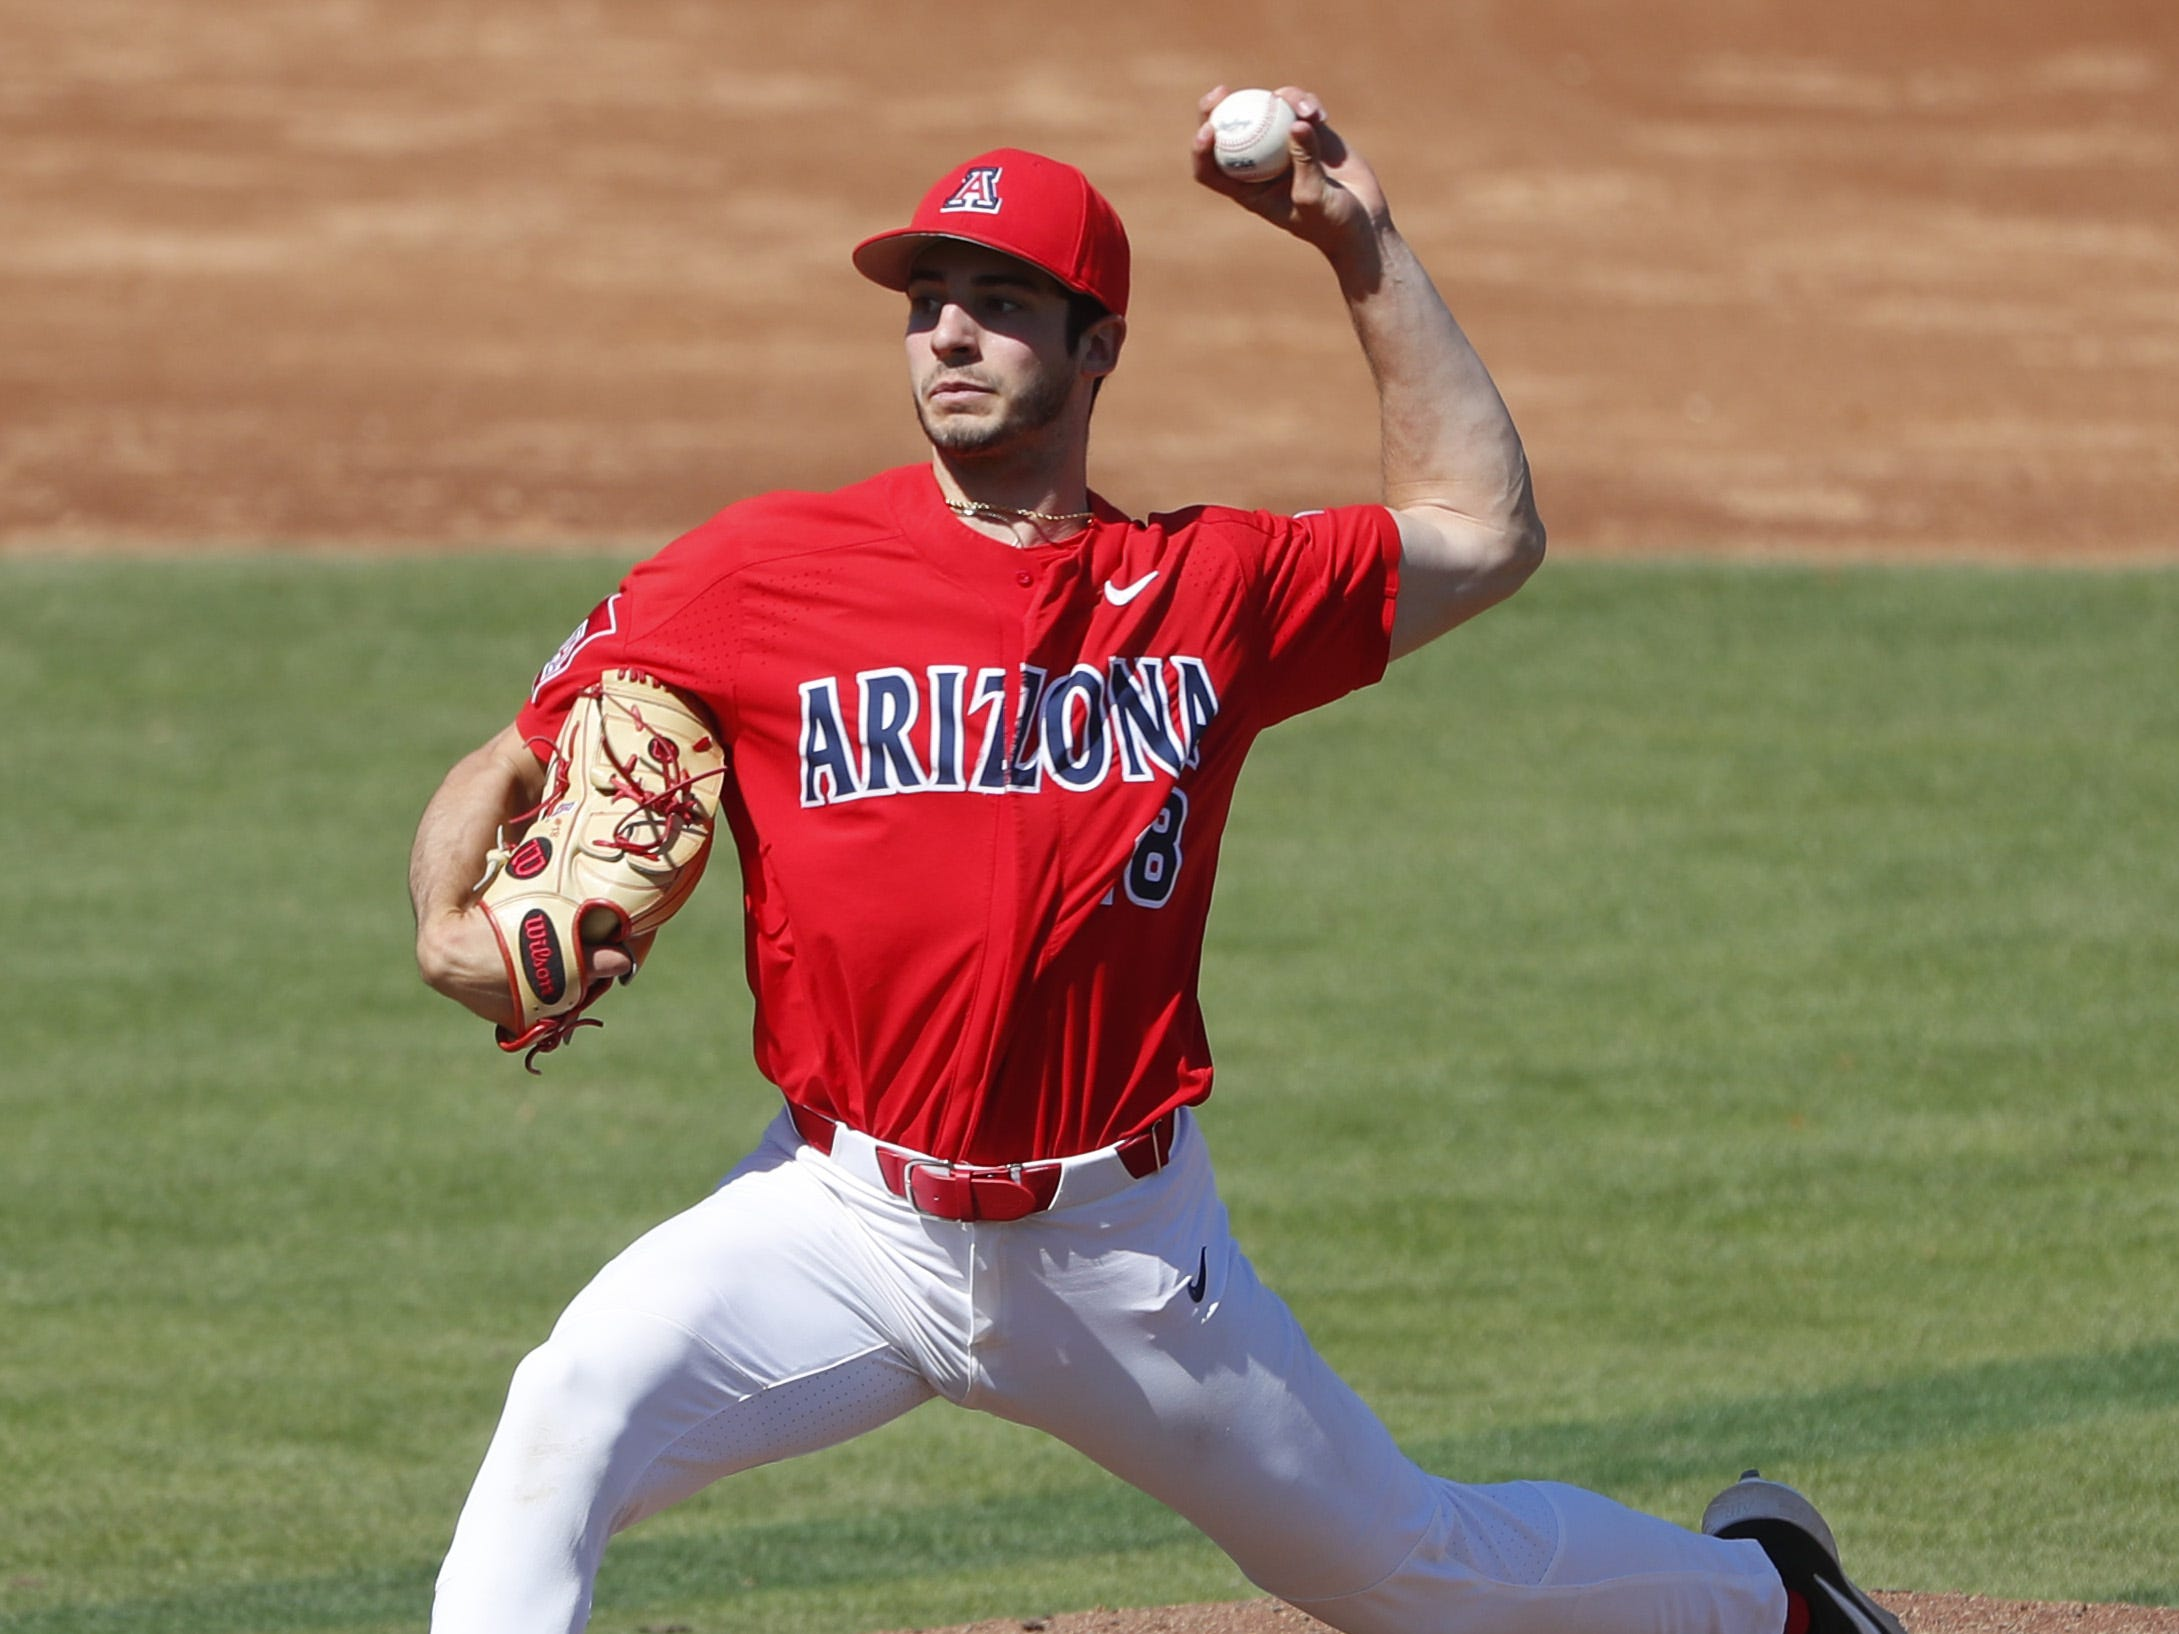 Arizona's Andrew Nardi (18) pitches against ASU during a game at Phoenix Municipal Stadium in Phoenix, Ariz. on March 30, 2019.